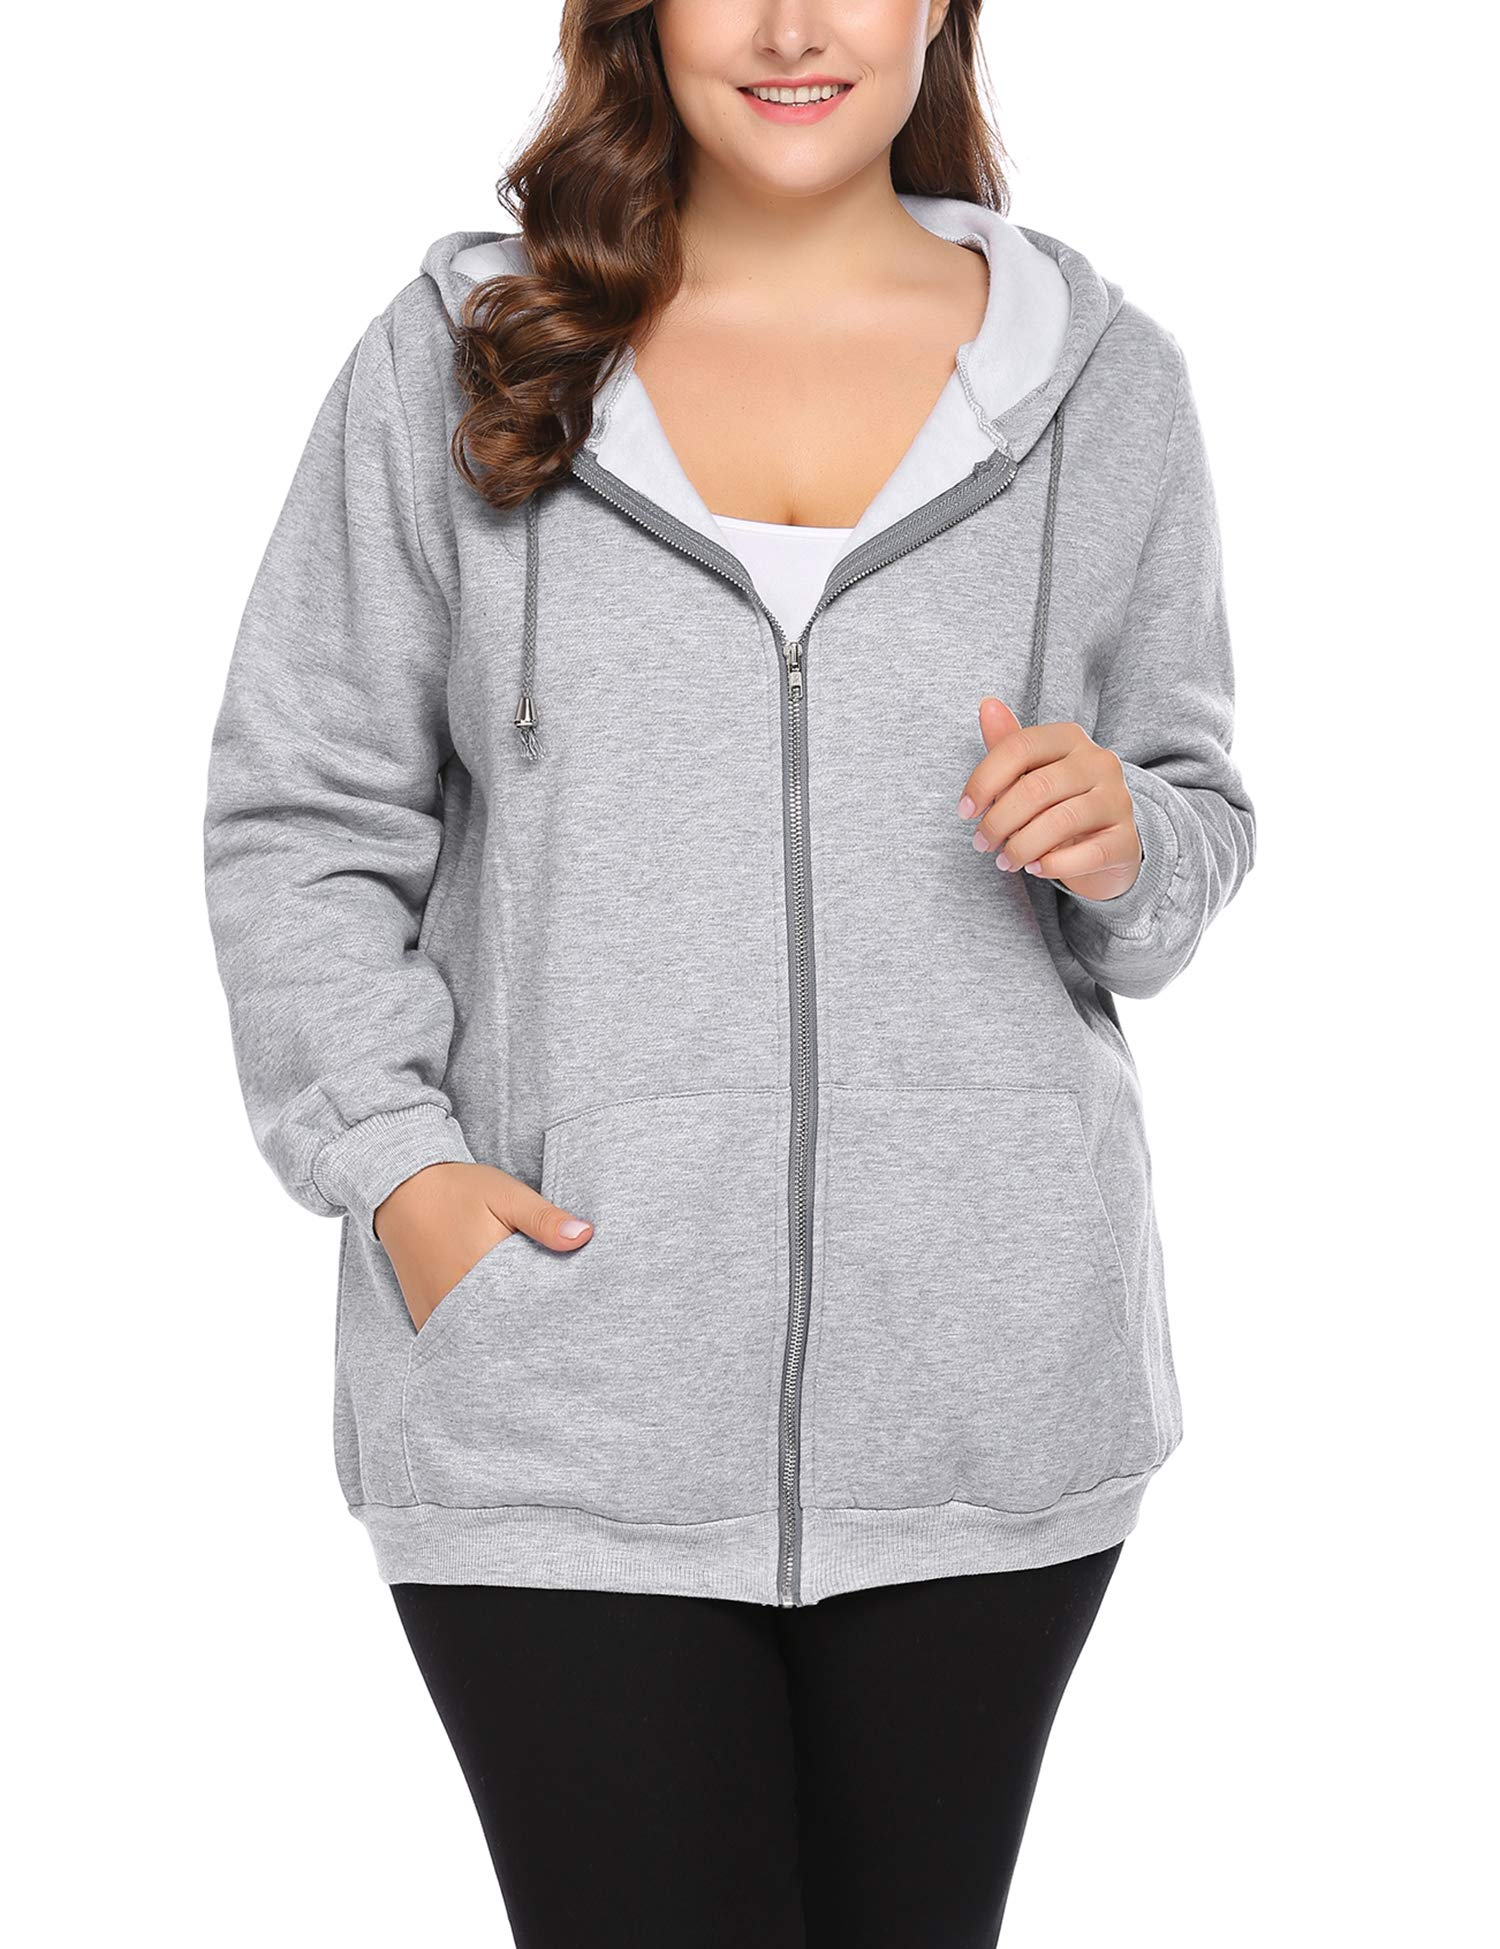 IN'VOLAND Plus Size Women Active Soft Full-Zip Hoodie Jacket with Pocket